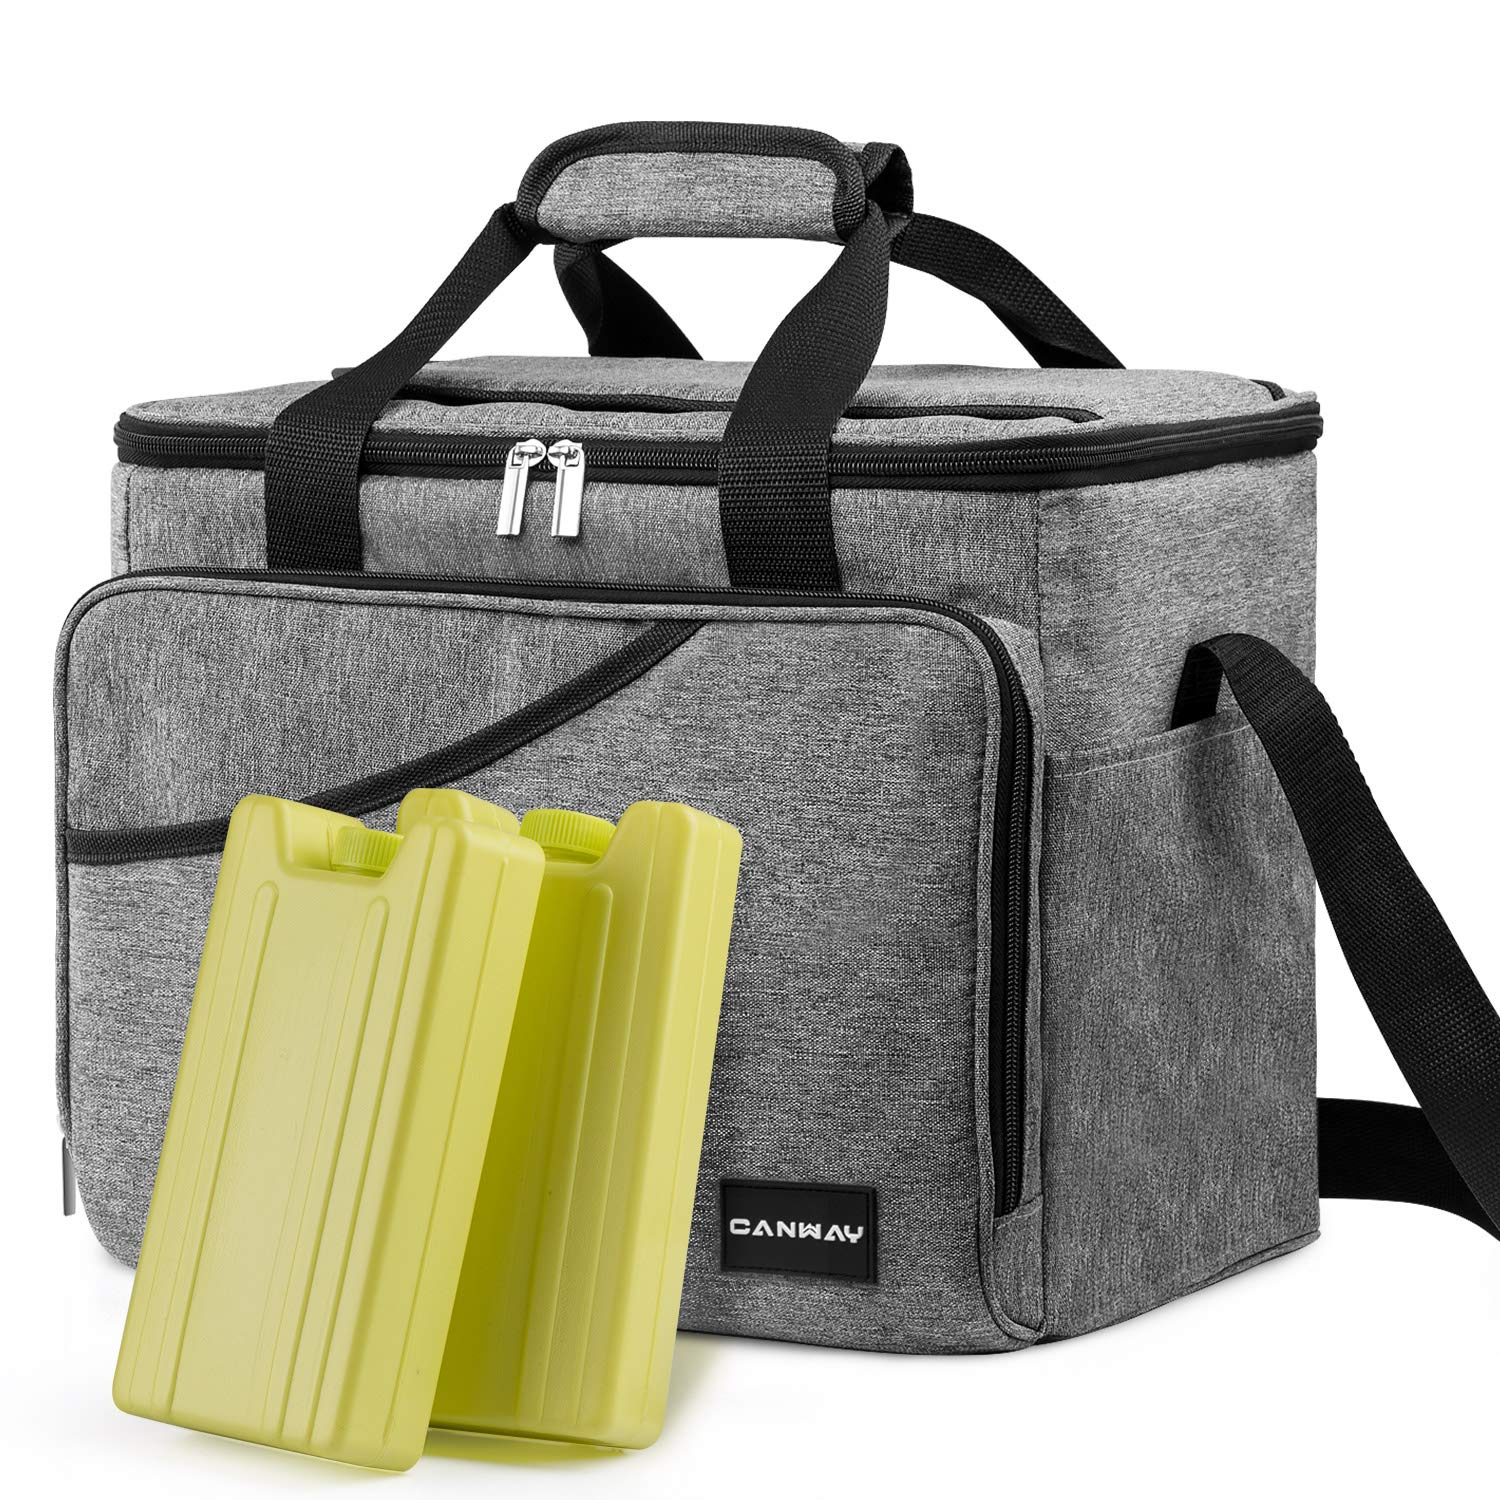 CANWAY Cooler Bag 40-Can Large, Insulated Soft Sided Cooler Bag with 2 Ice Packs for Outdoor Travel Hiking Beach Picnic BBQ Party, Gray by CANWAY